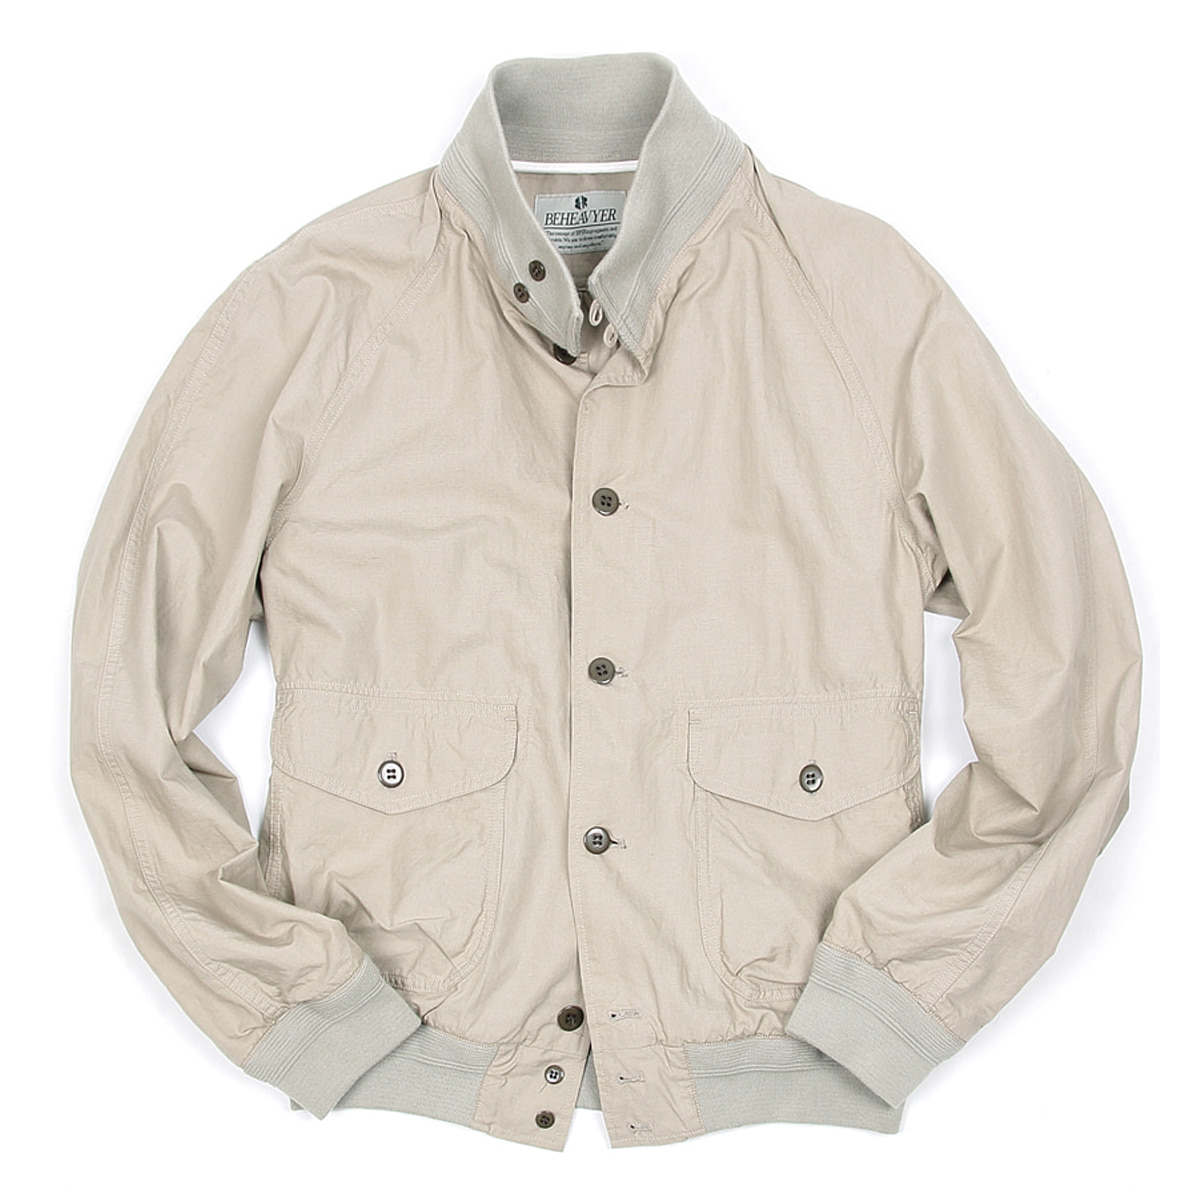 [BEHEAVYER] BHR A-1 LINEN BLOUSON 'LIGHT GRAY'